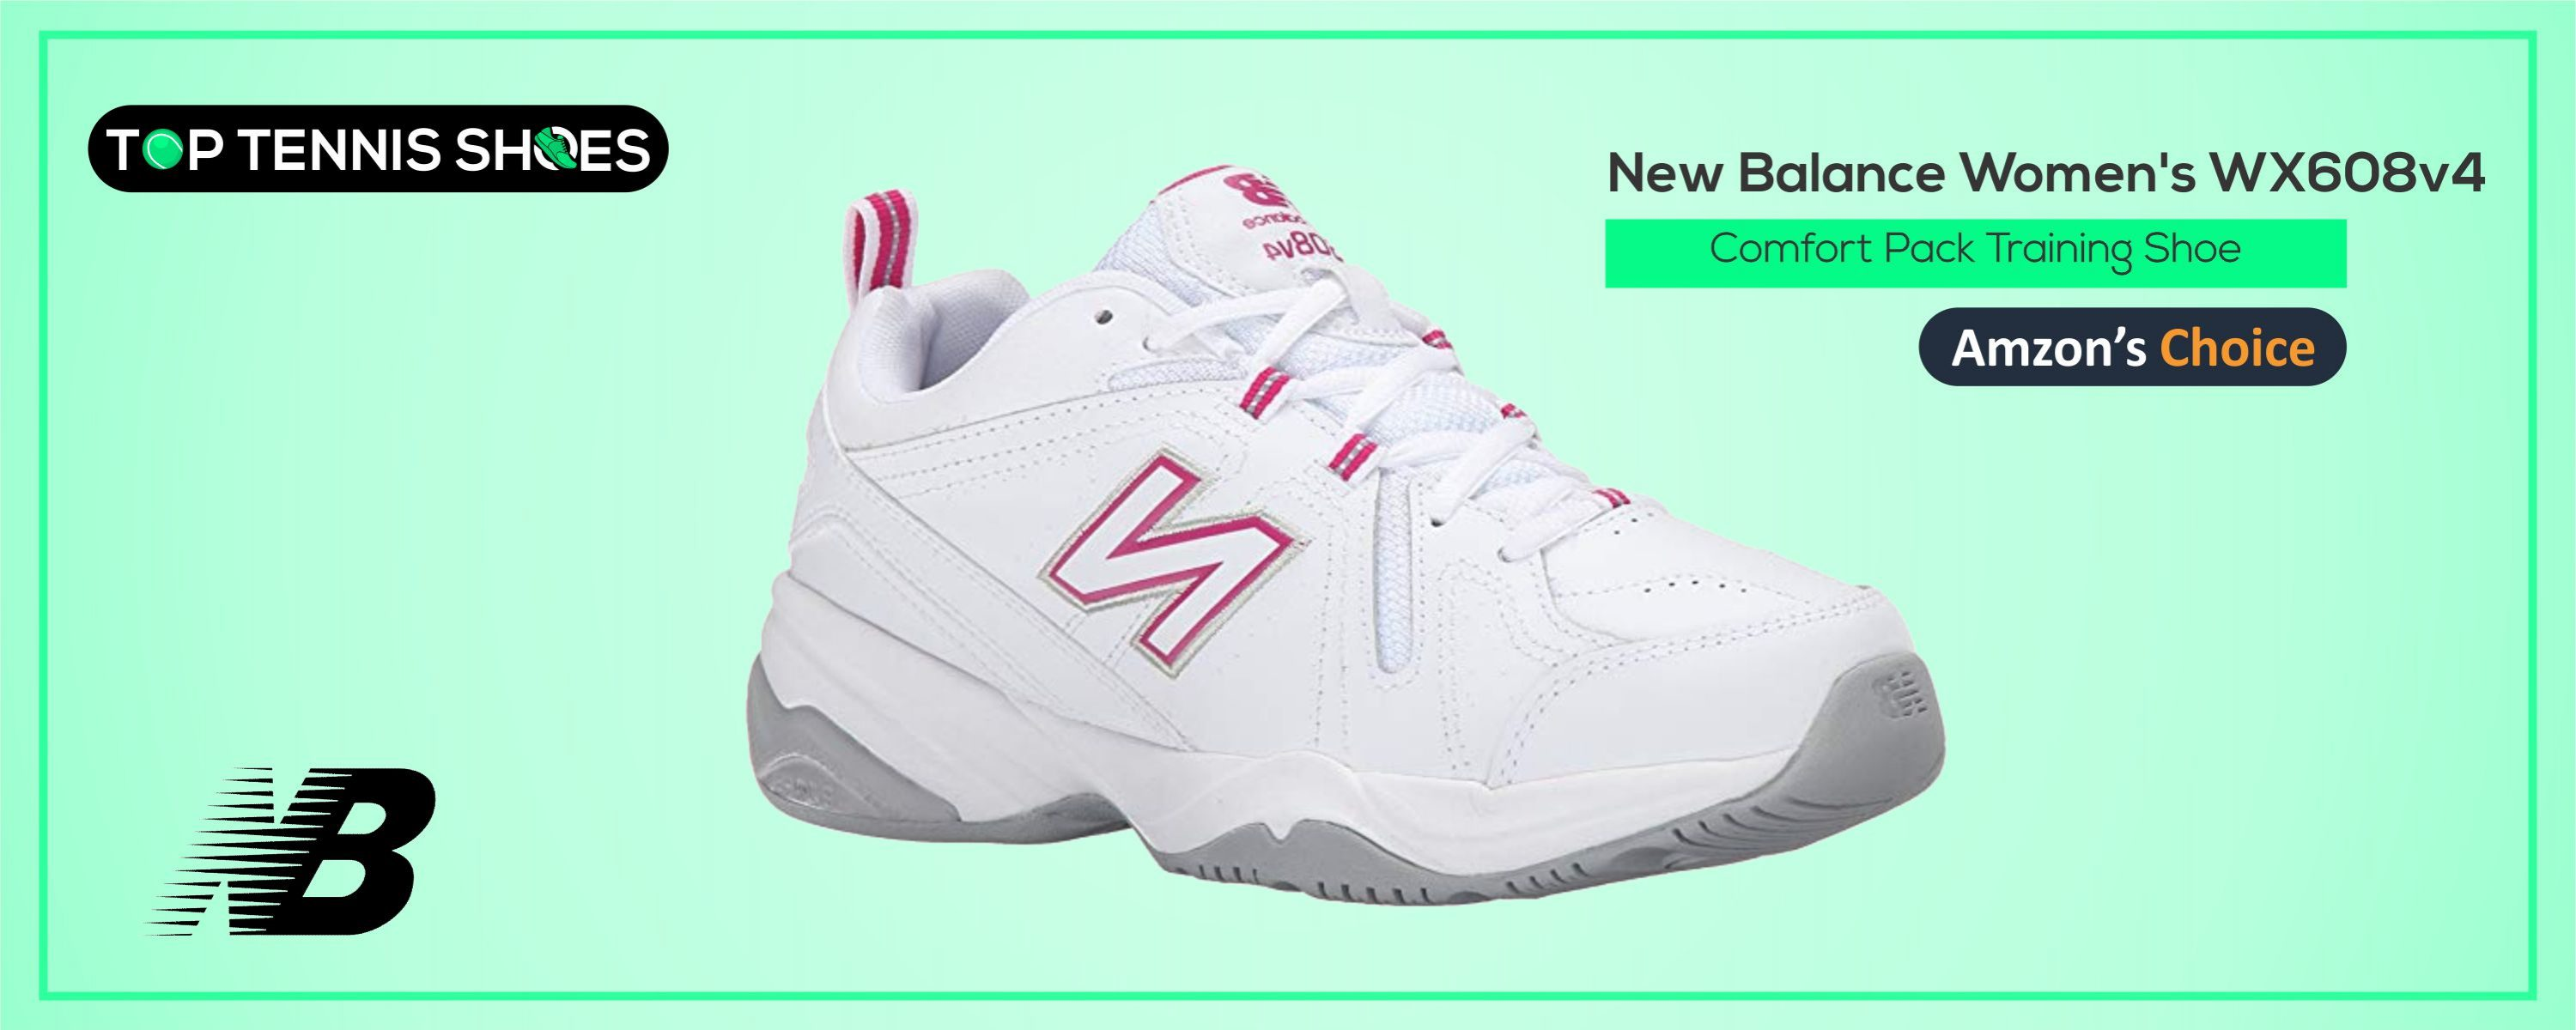 tennis shoe for ankle support reviews 2019